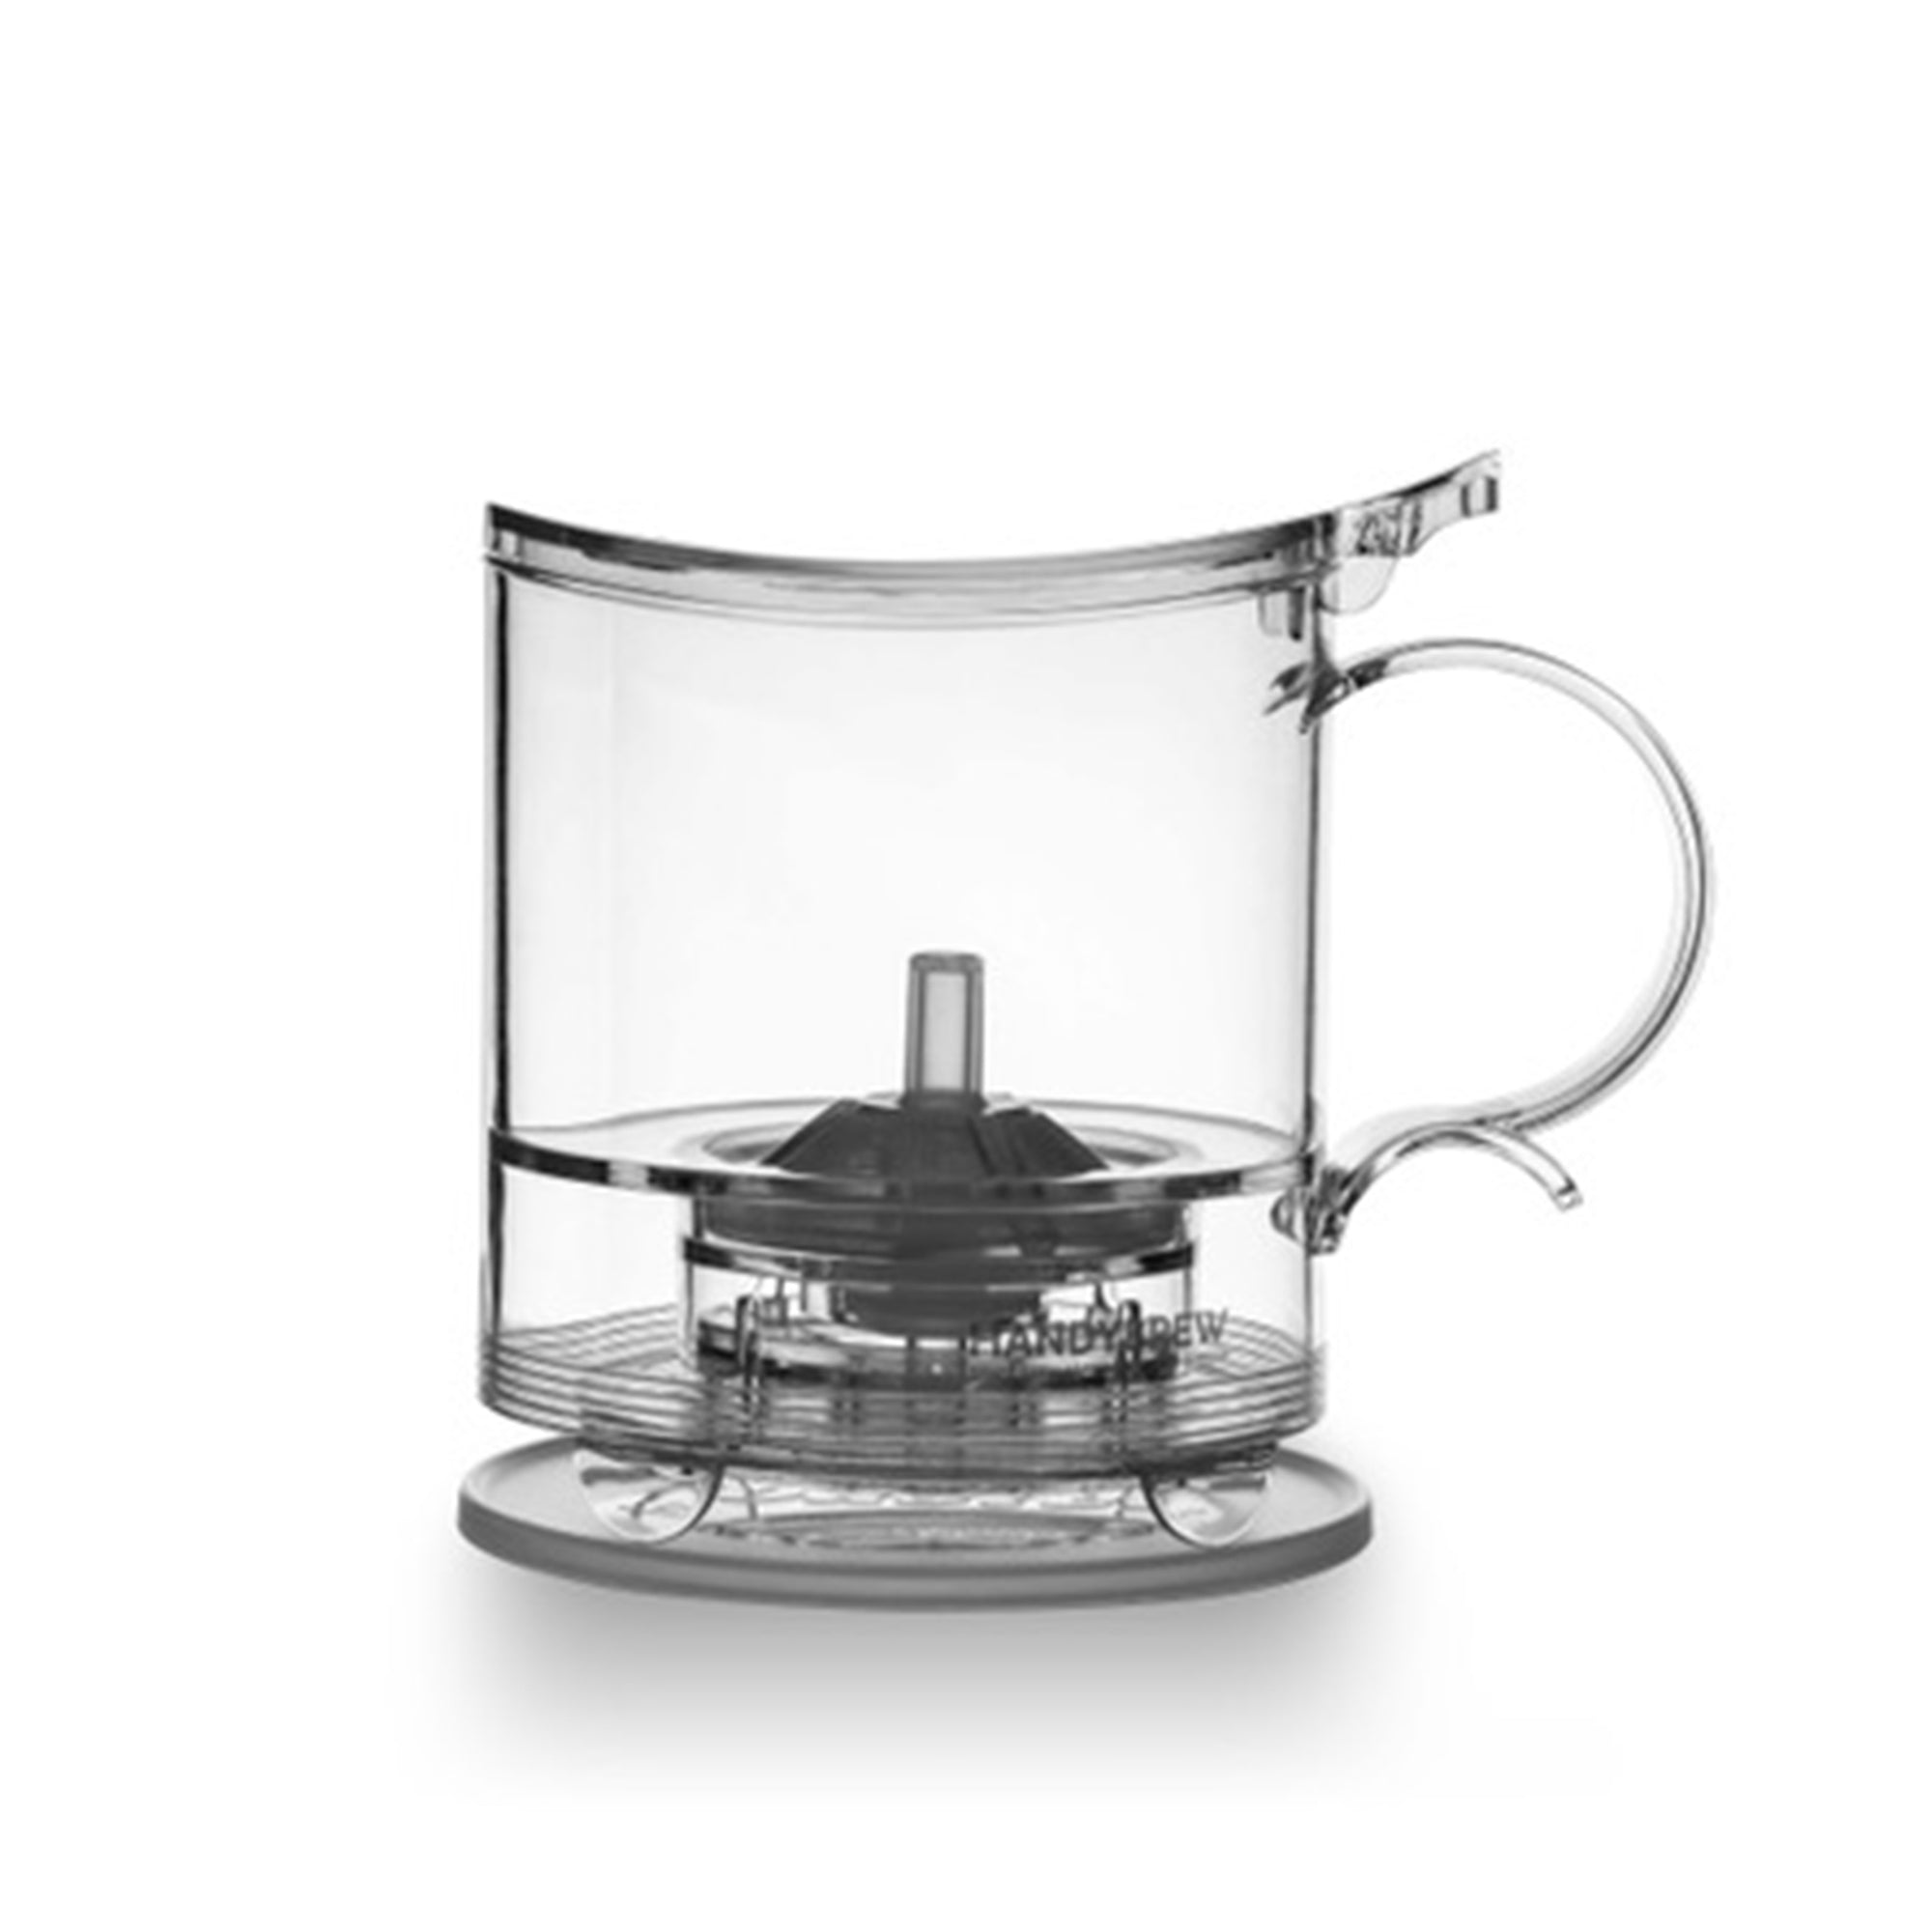 Tea Dripper - Clever - Espresso Gear